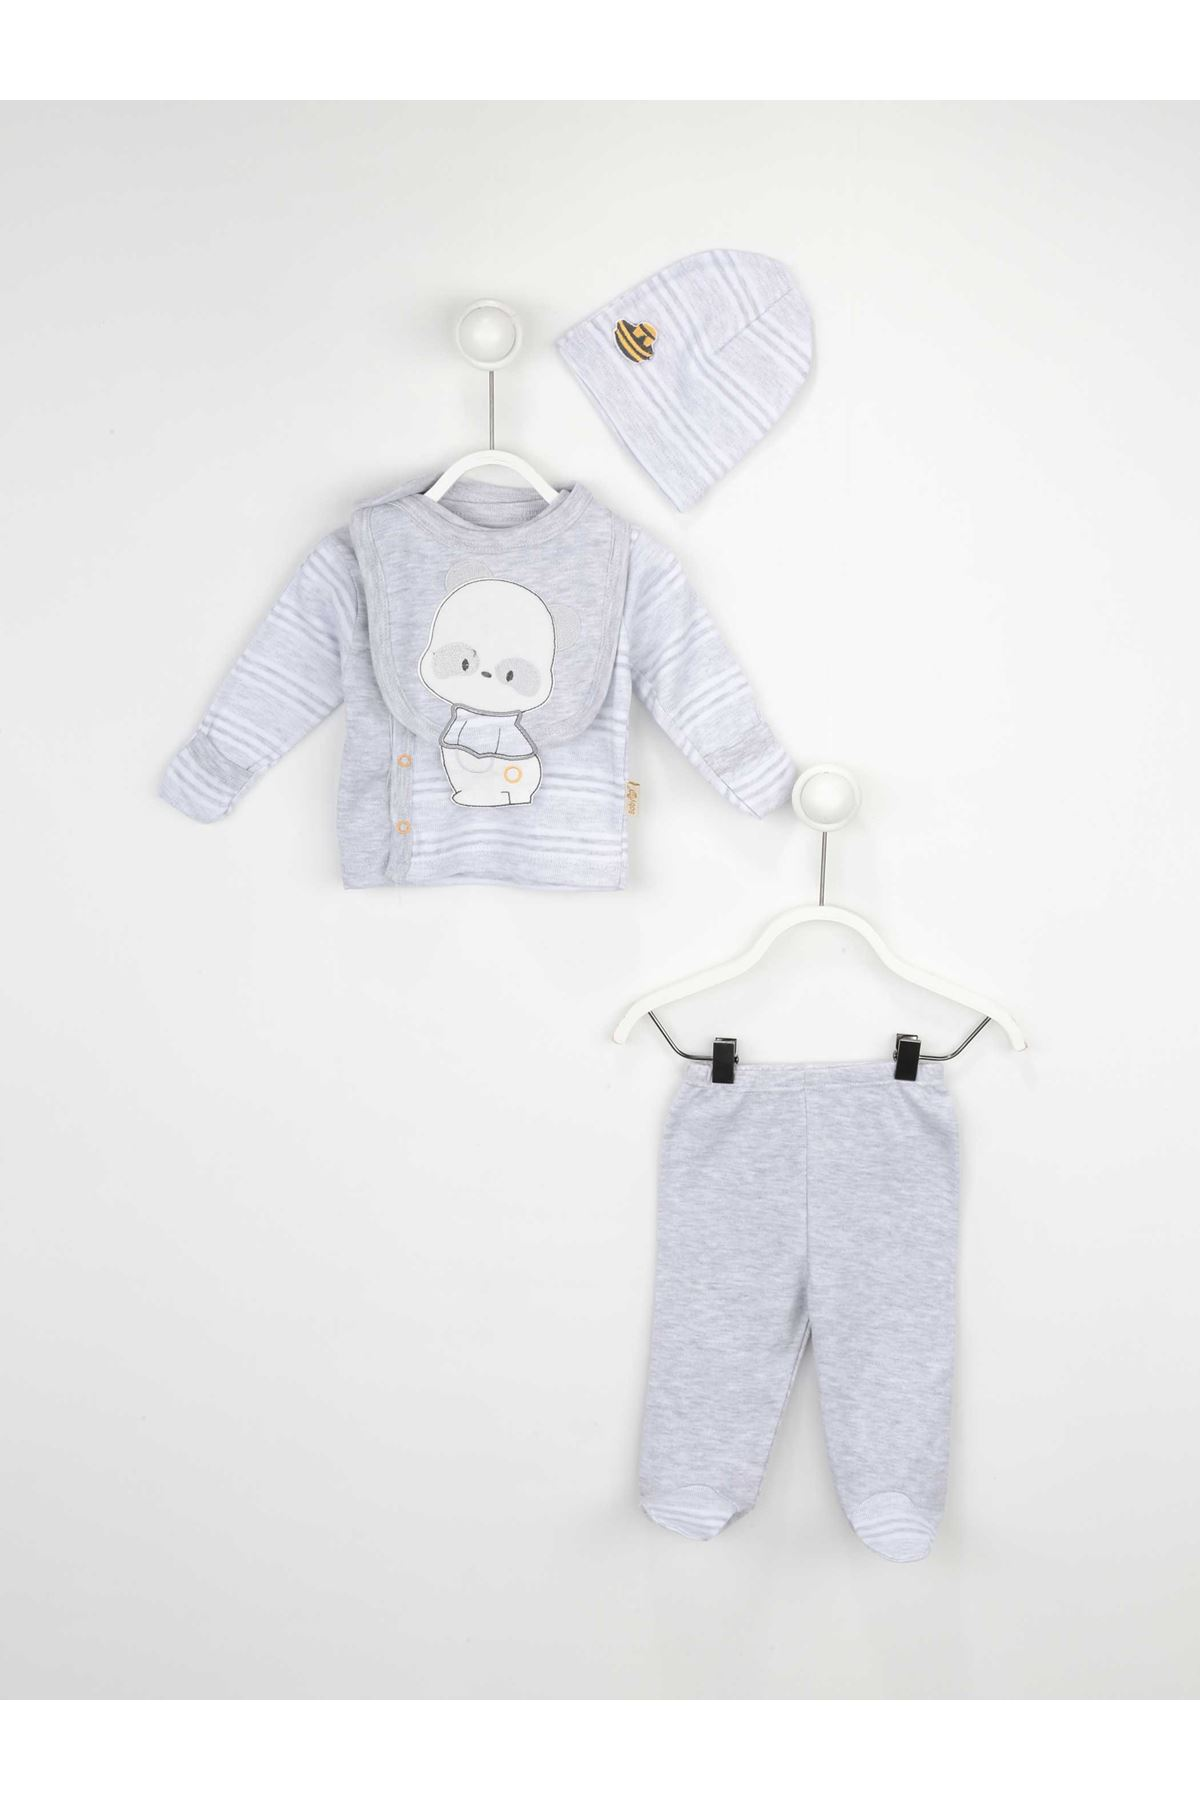 Gray Male Baby 4 PCs Hospital Output